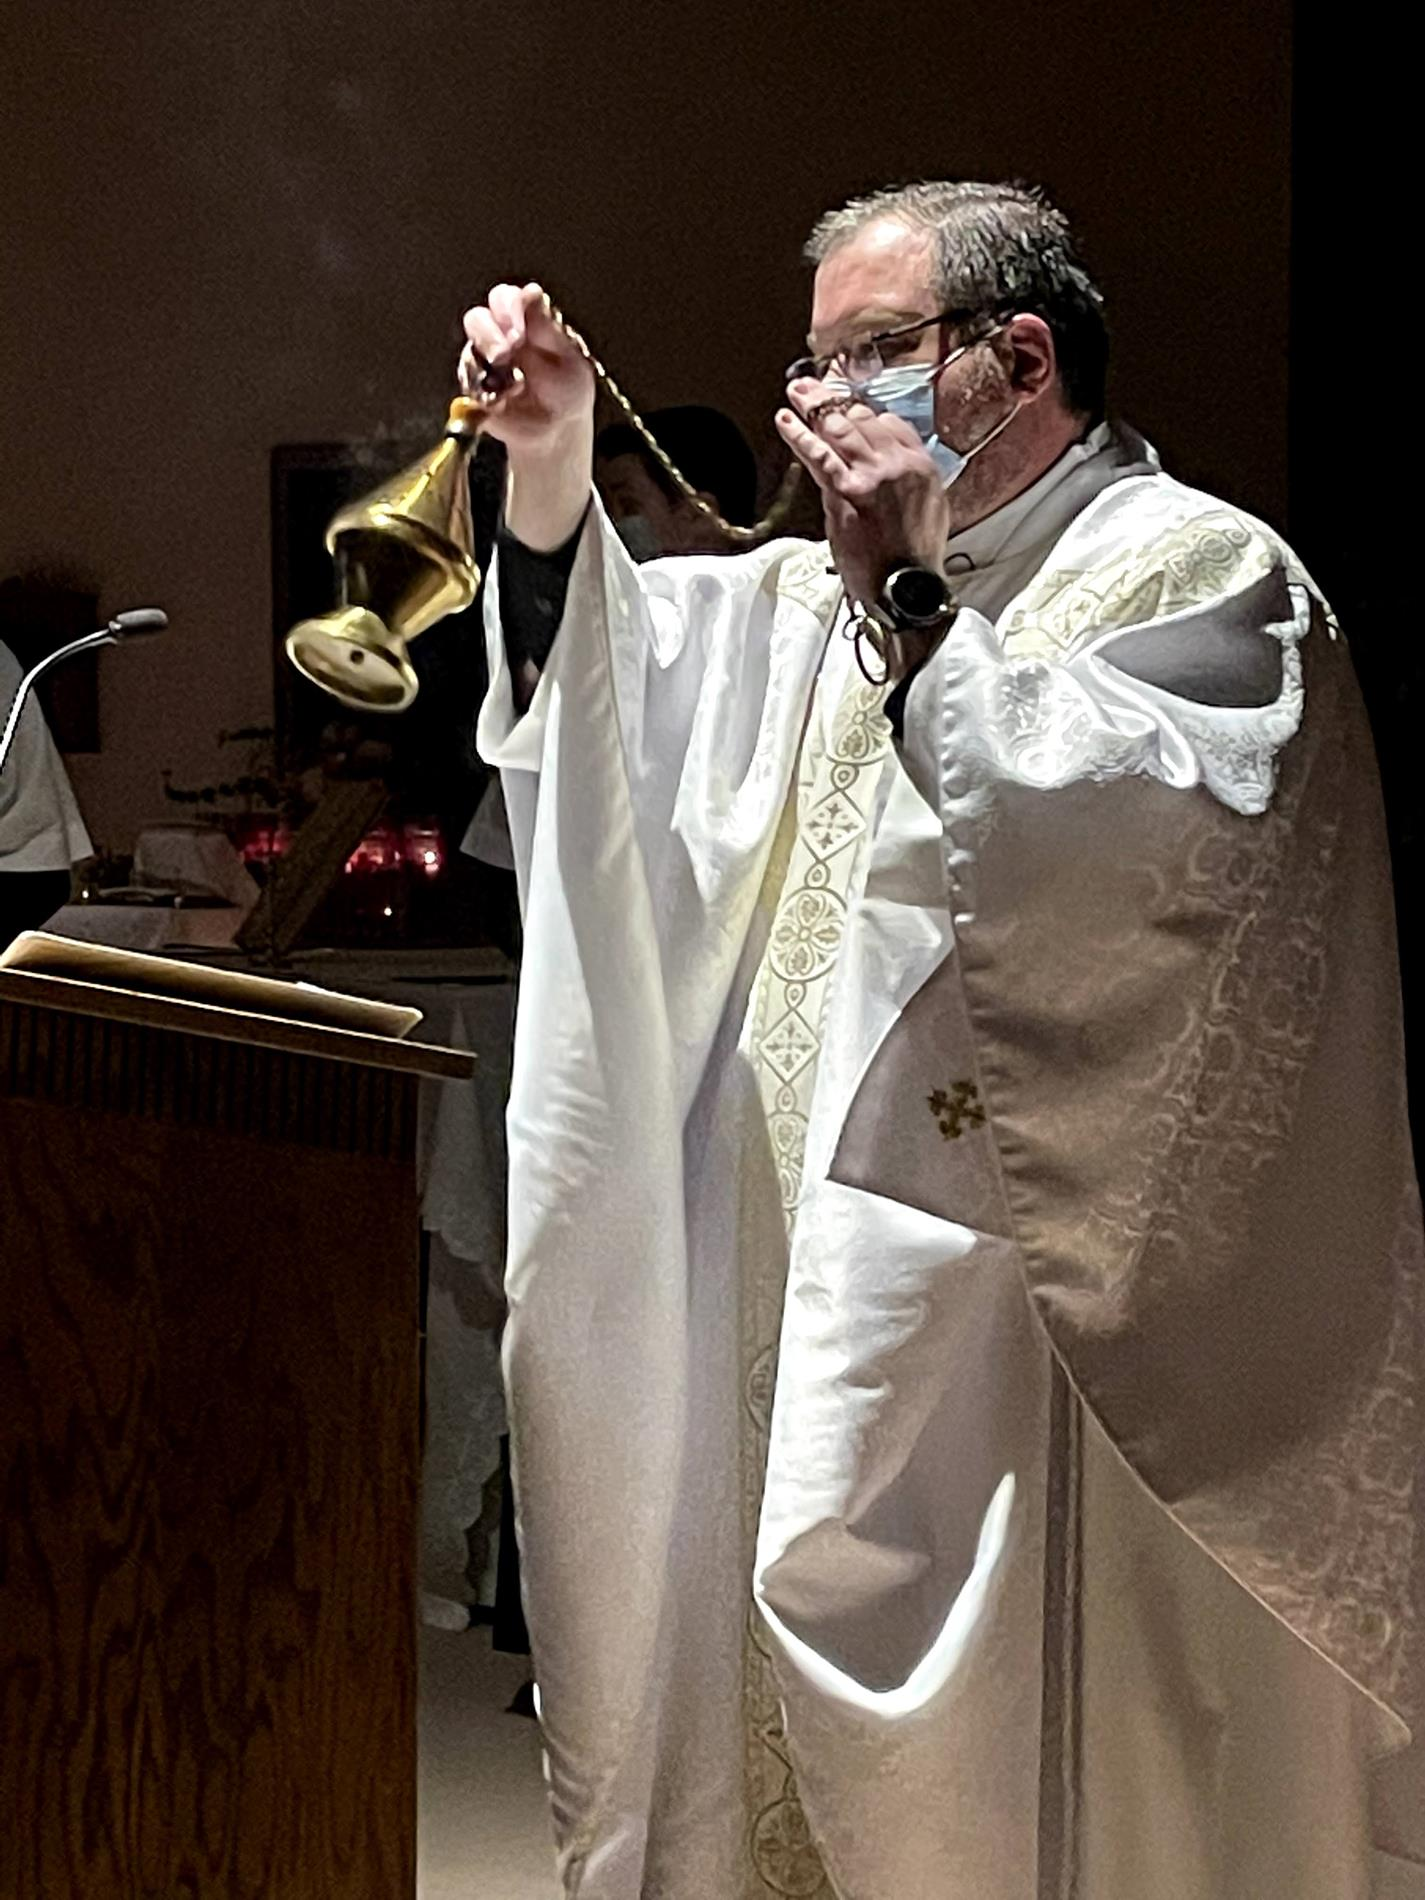 Fr. Weiss incenses the altar and ambo